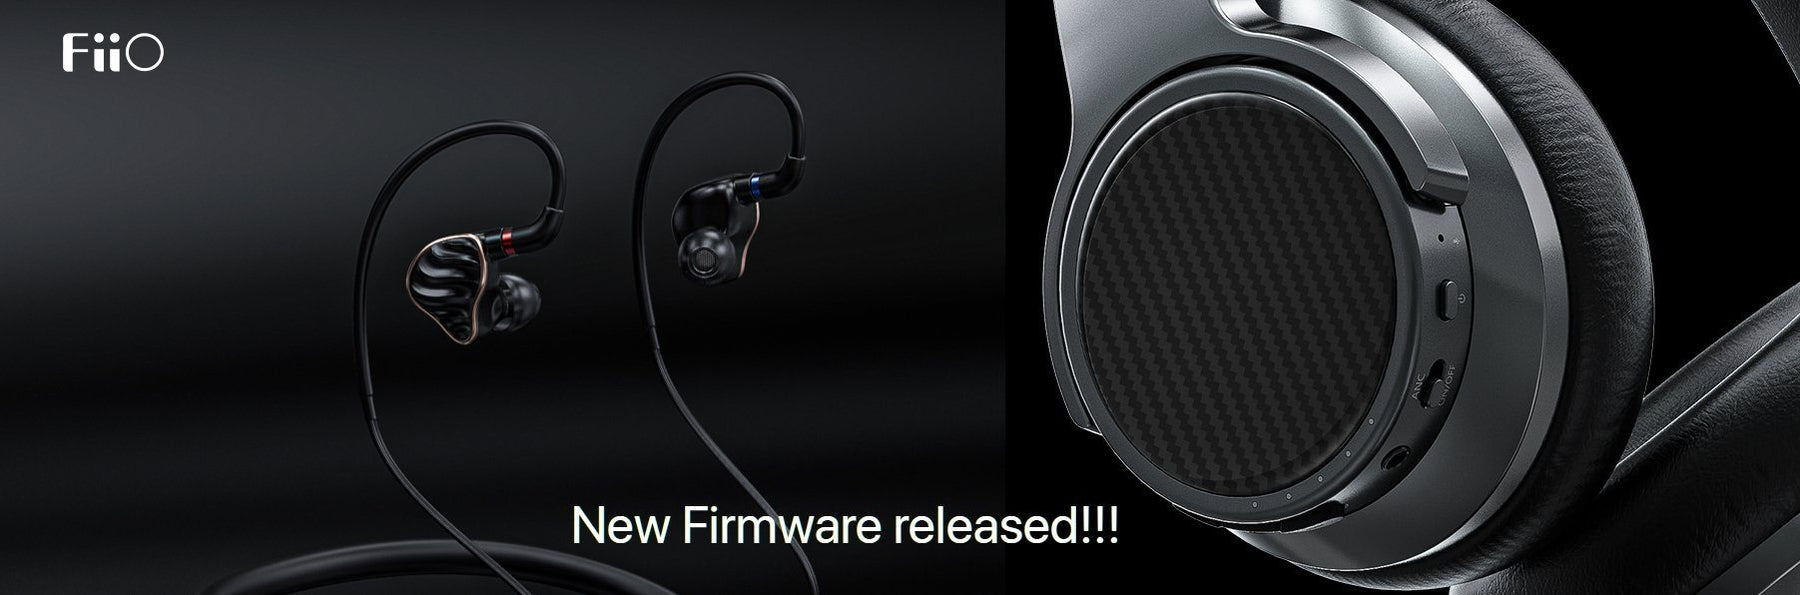 [New firmware] FiiO releases the new firmware for LC-BT2 and EH3NC! New Bluetooth renaming Function, various improvements!